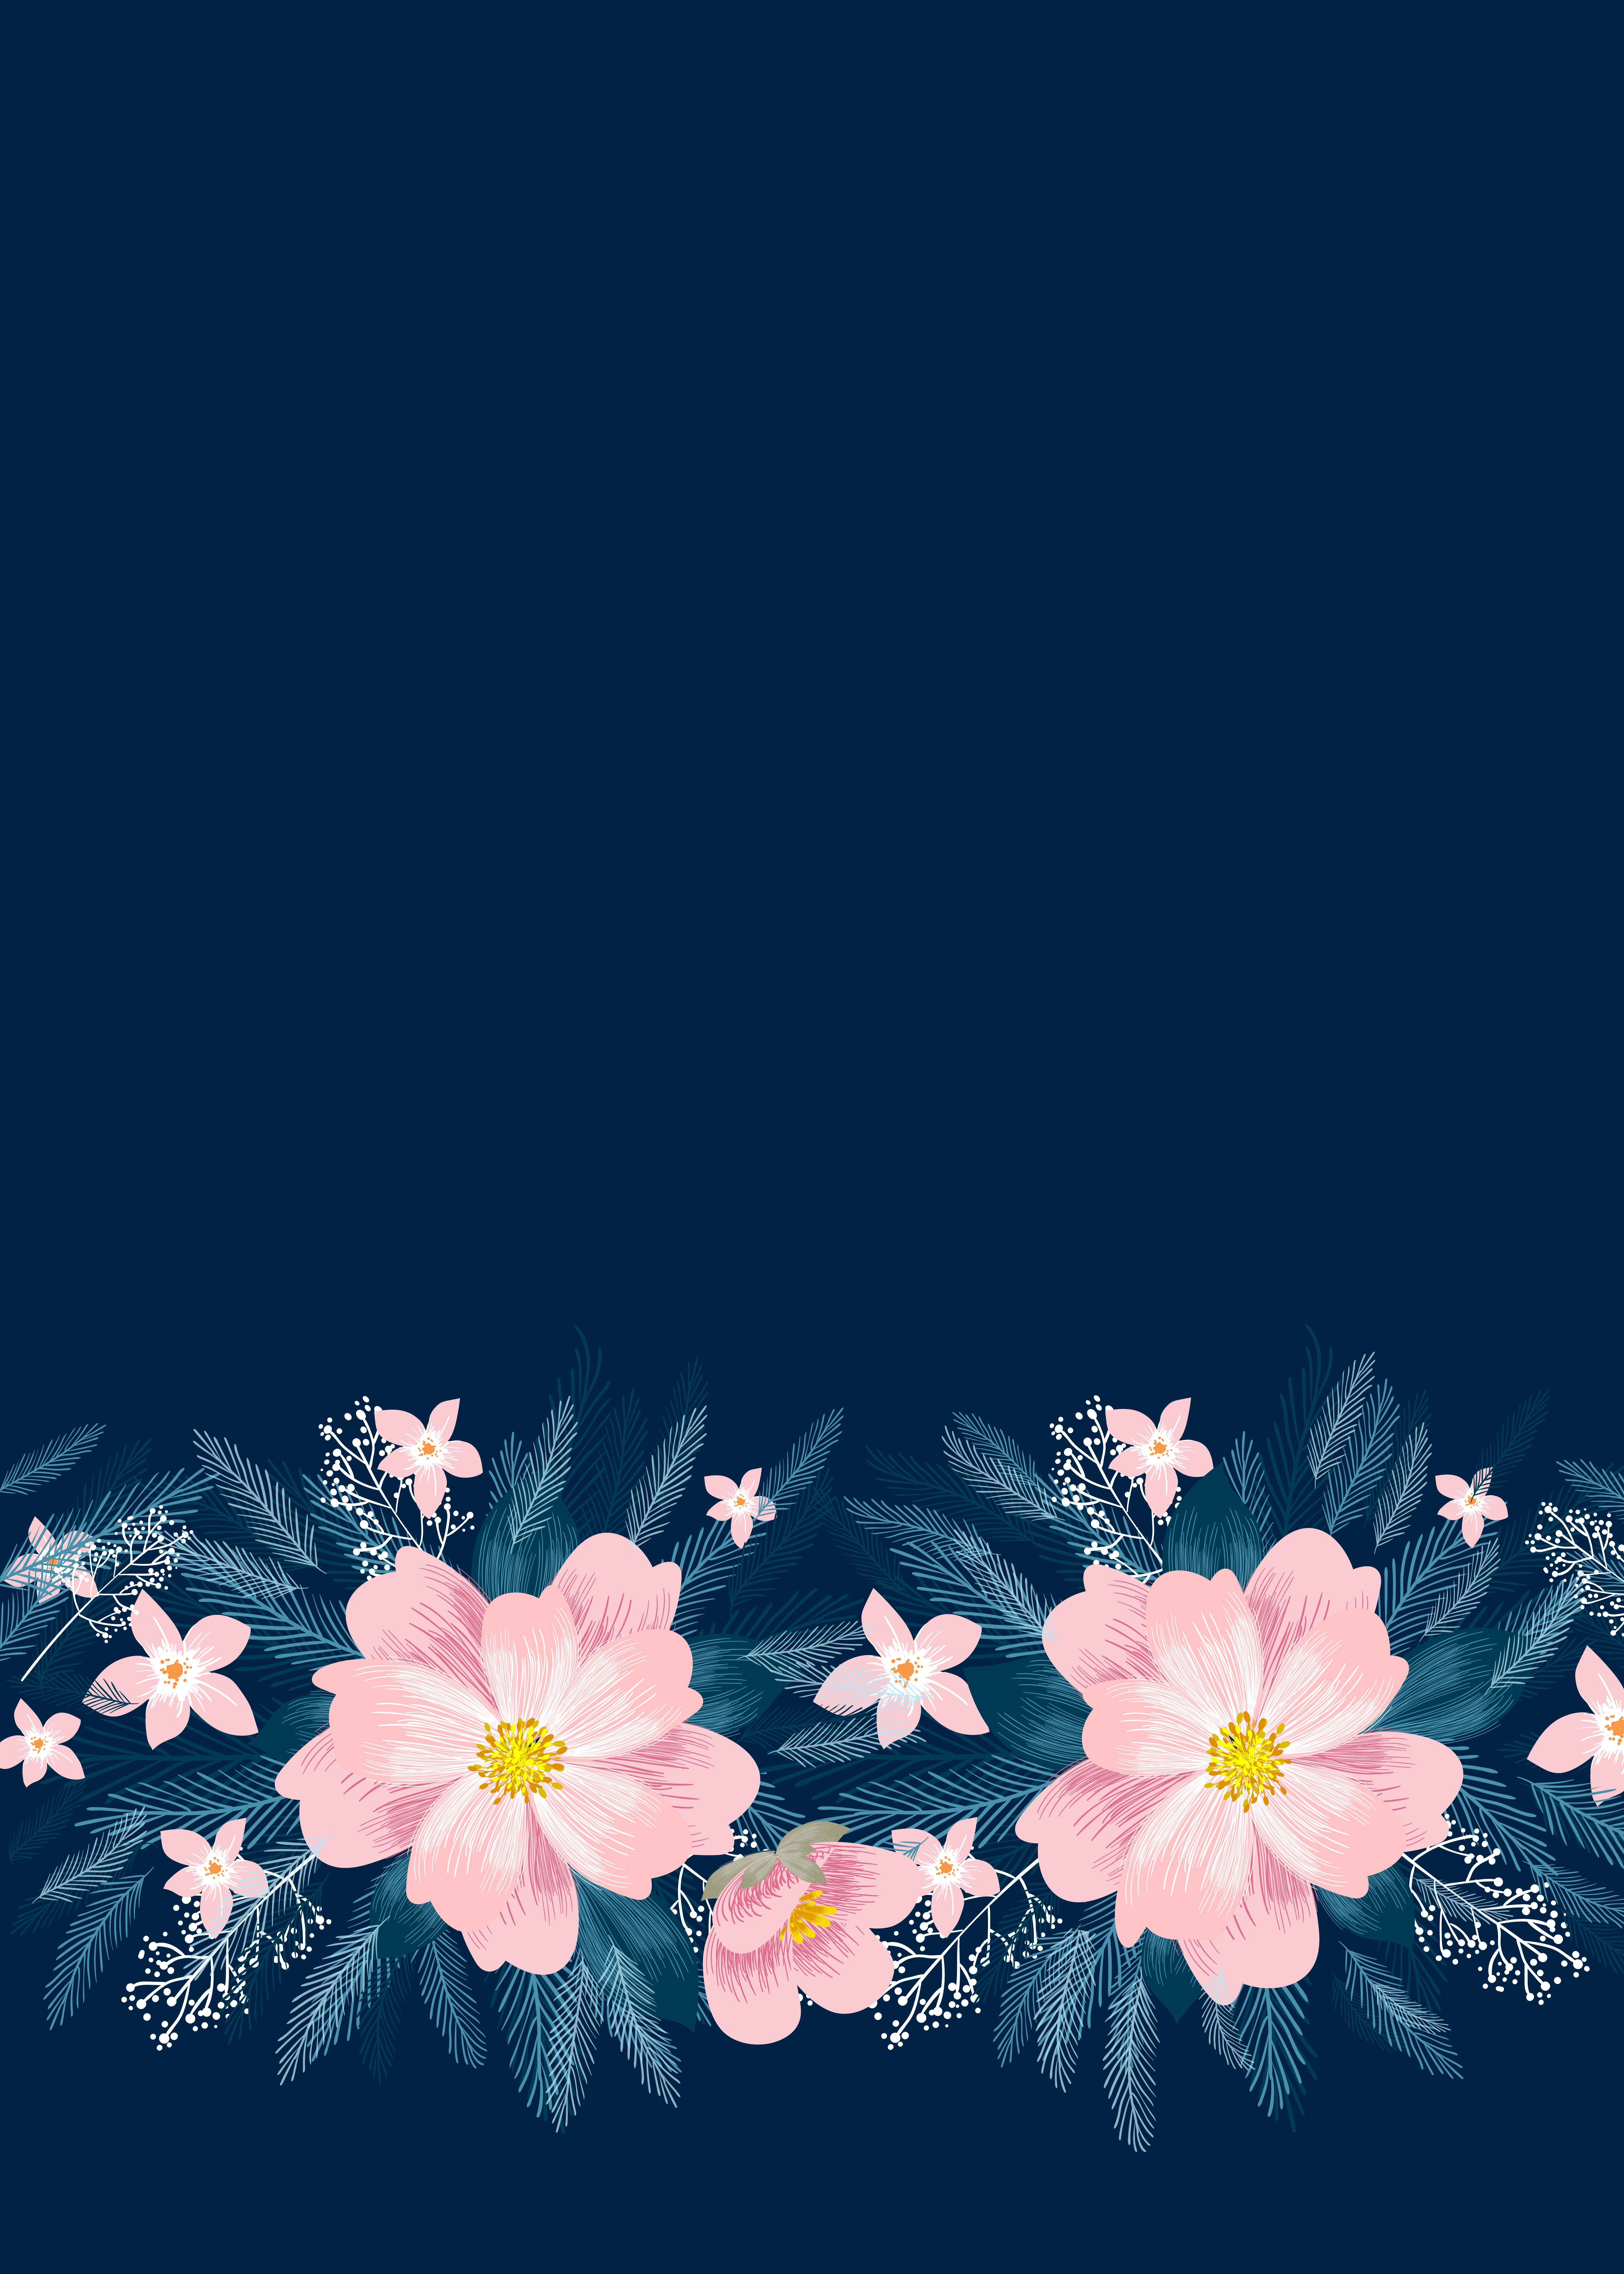 Browse the Best of Black Wallpaper Flower for Xiaomi 2020 from pngtree.com